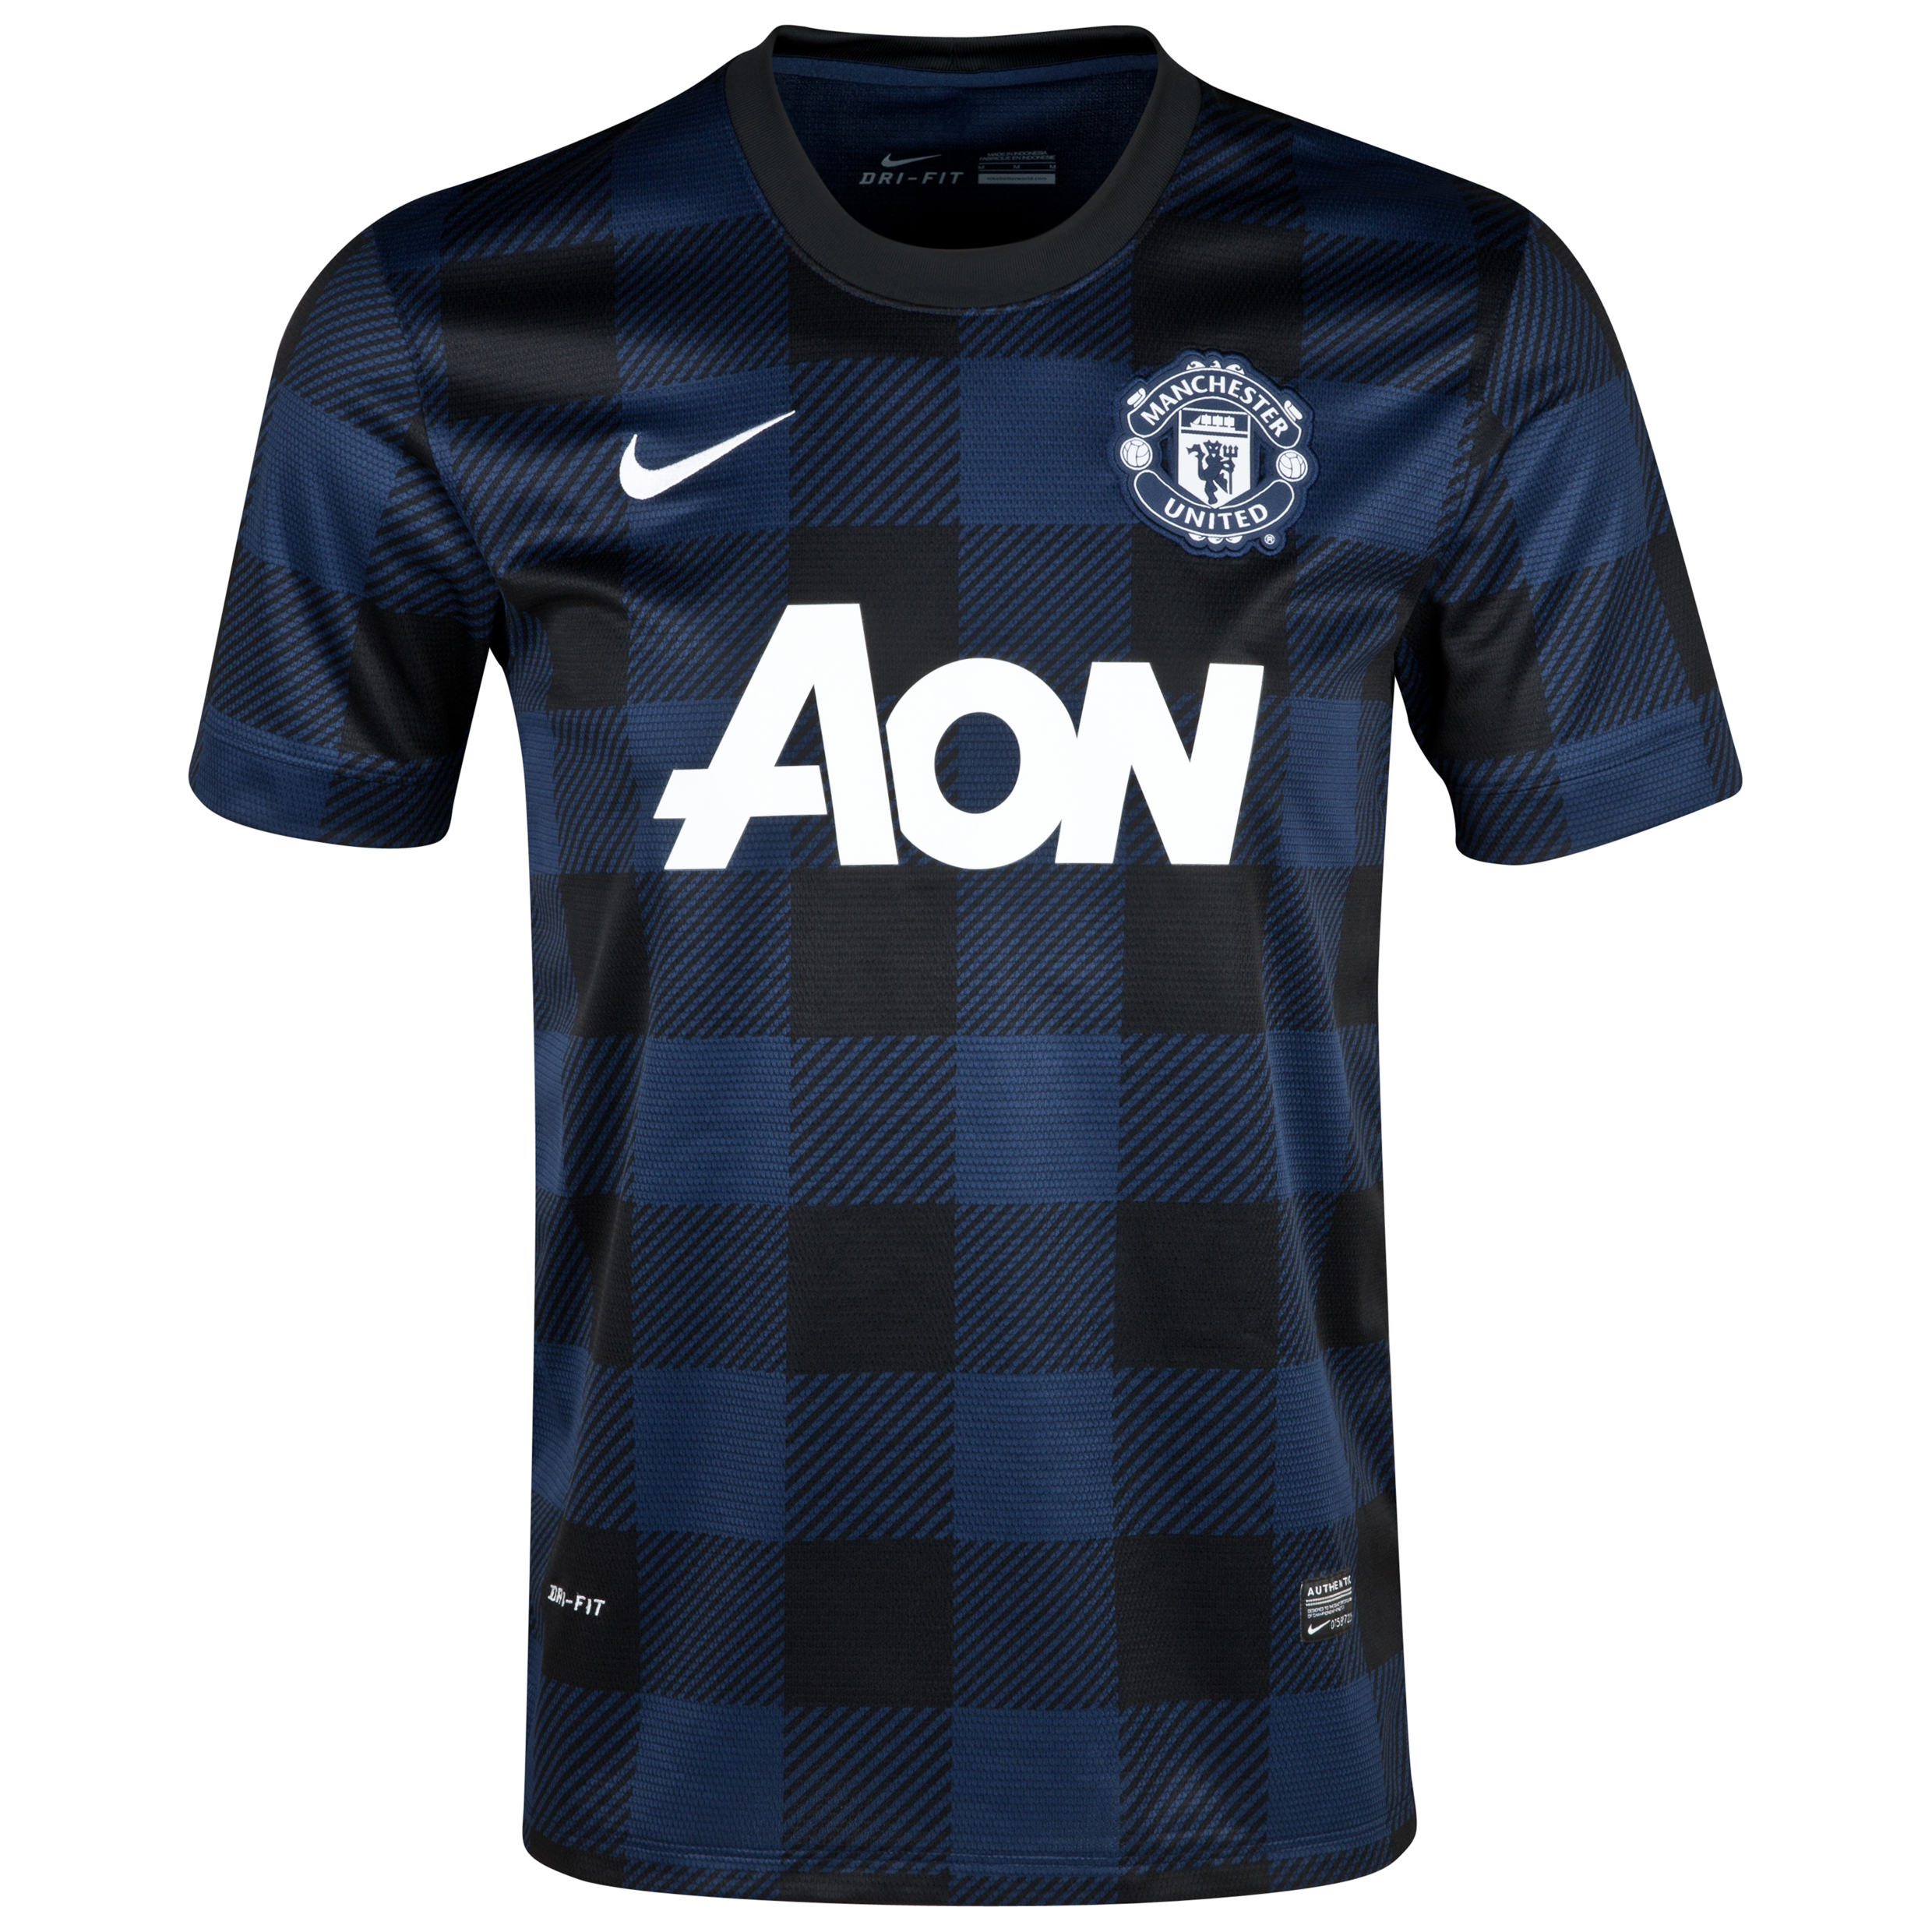 Manchester United UEFA Champions League Away Shirt 2013/14 - Womens with Giggs 11 printing